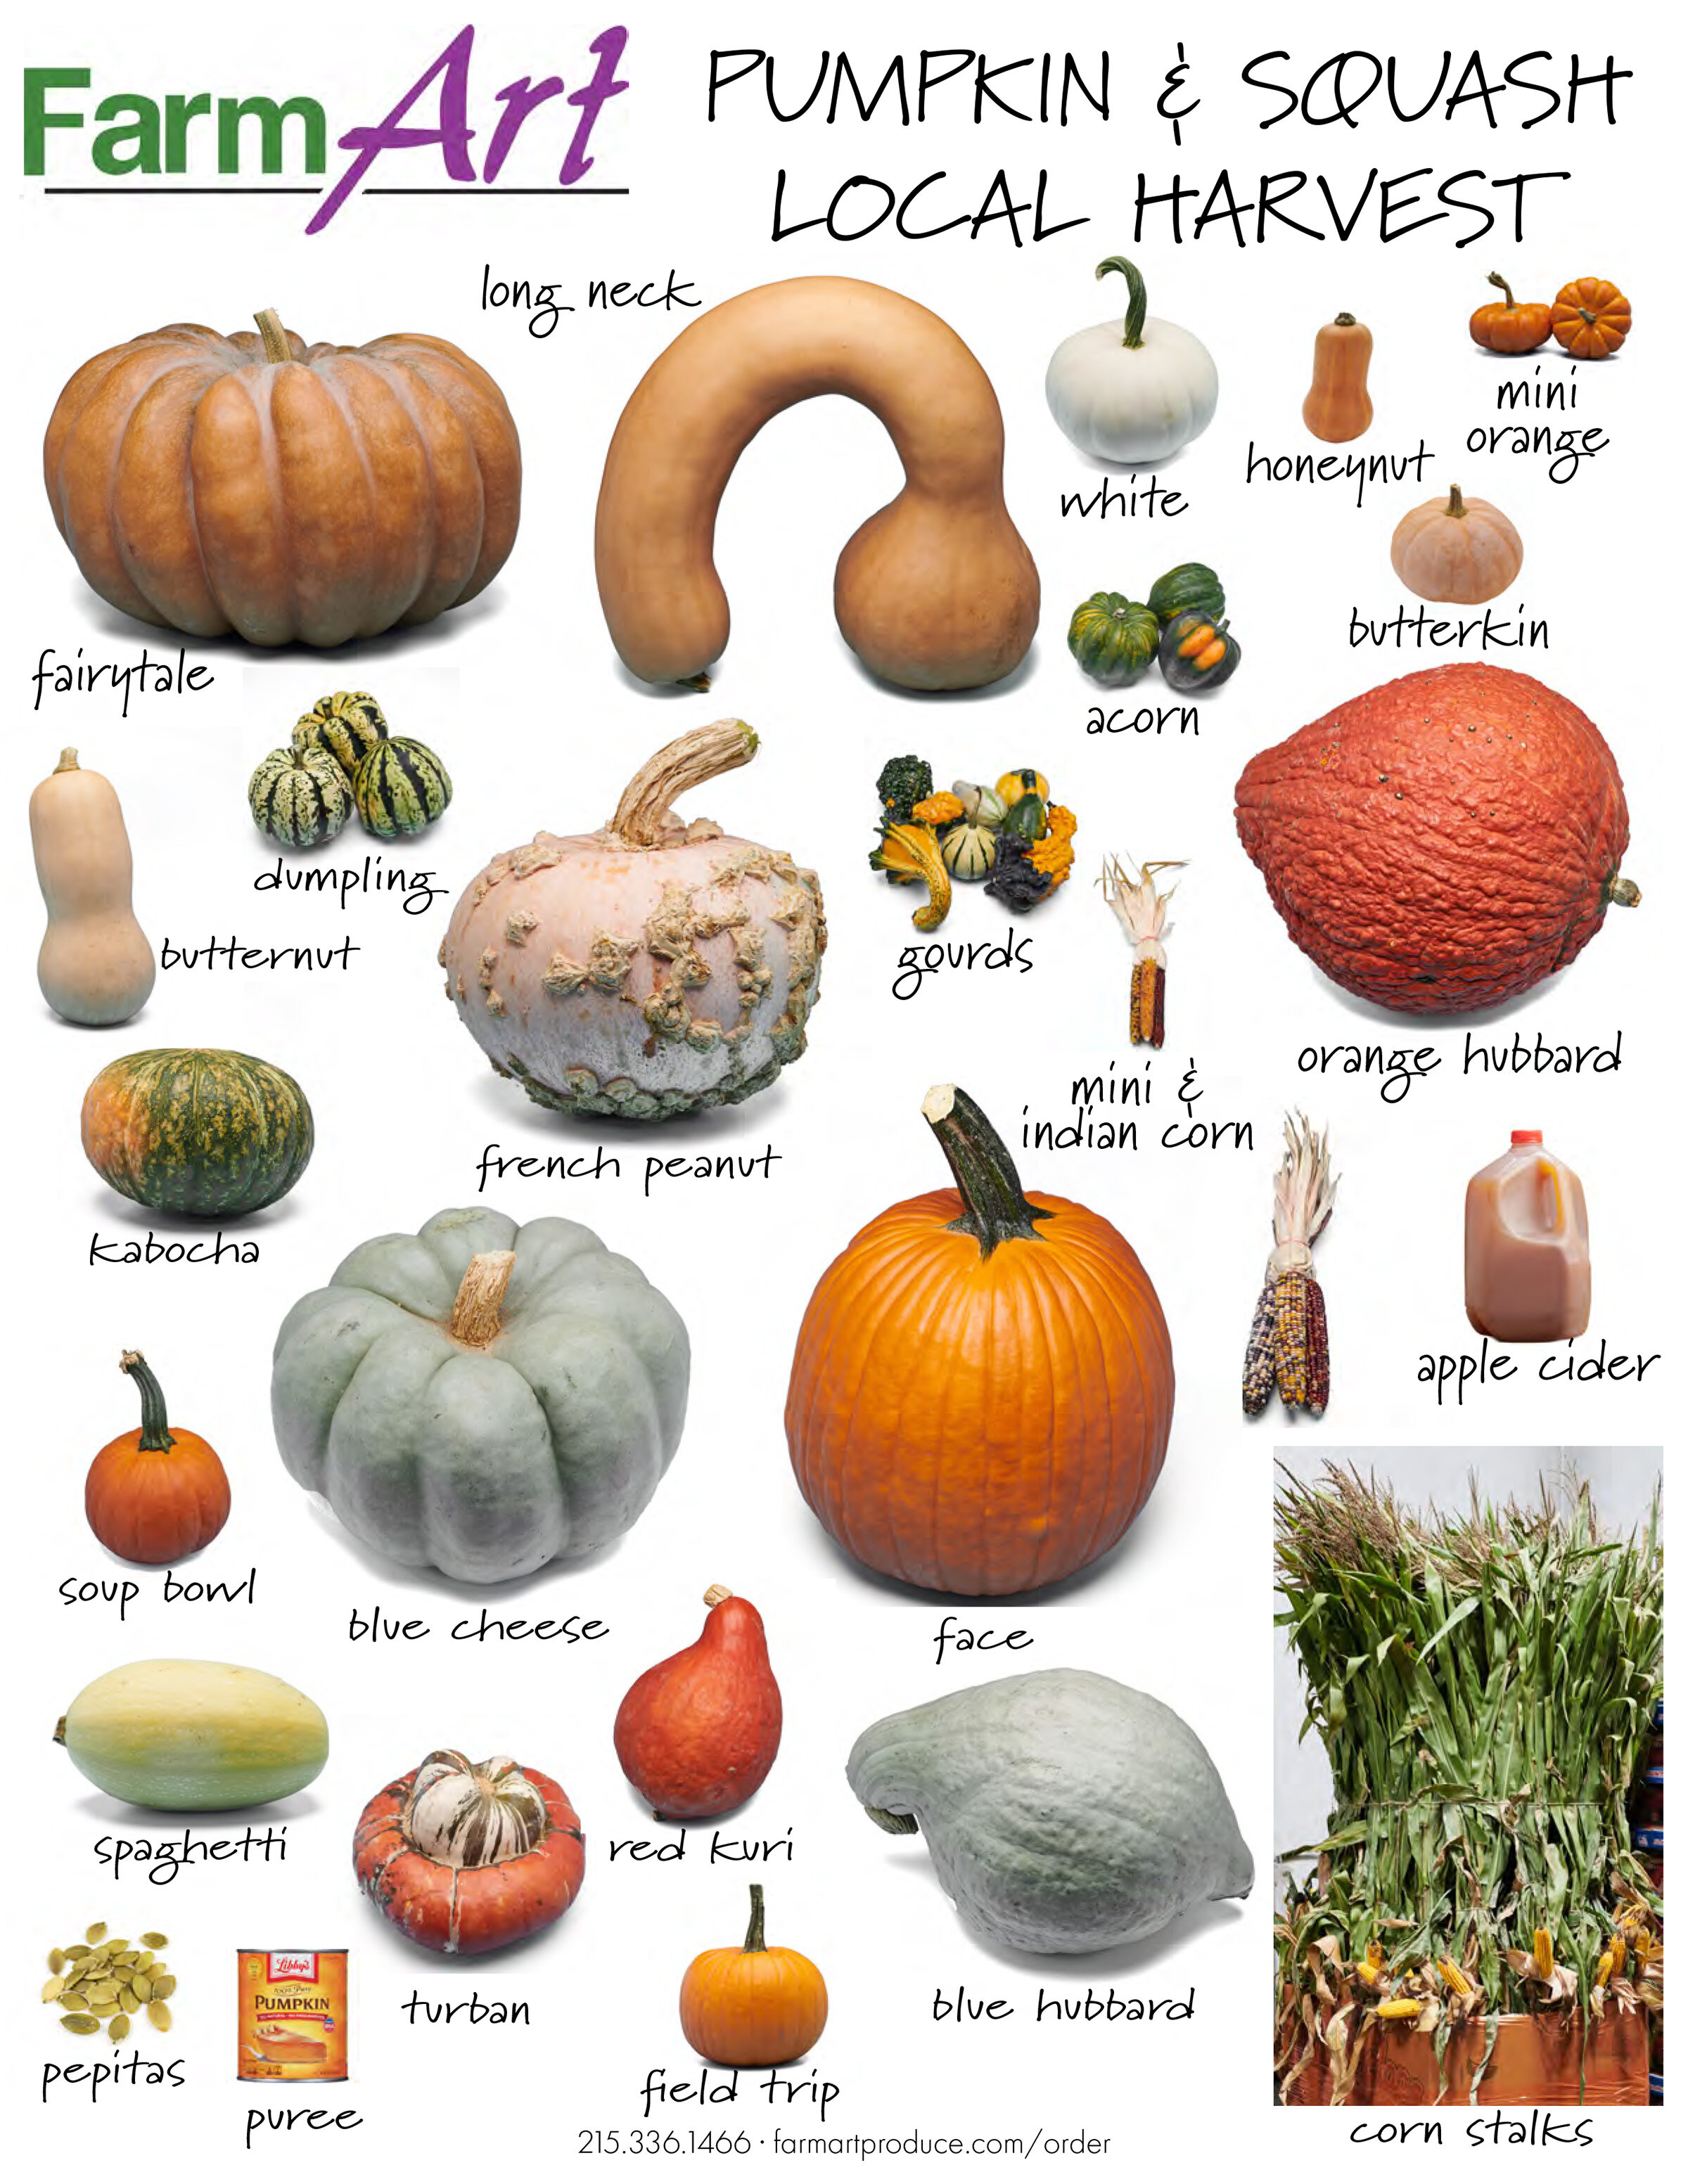 20190918 pumpkin and squash sheet v3small.jpg